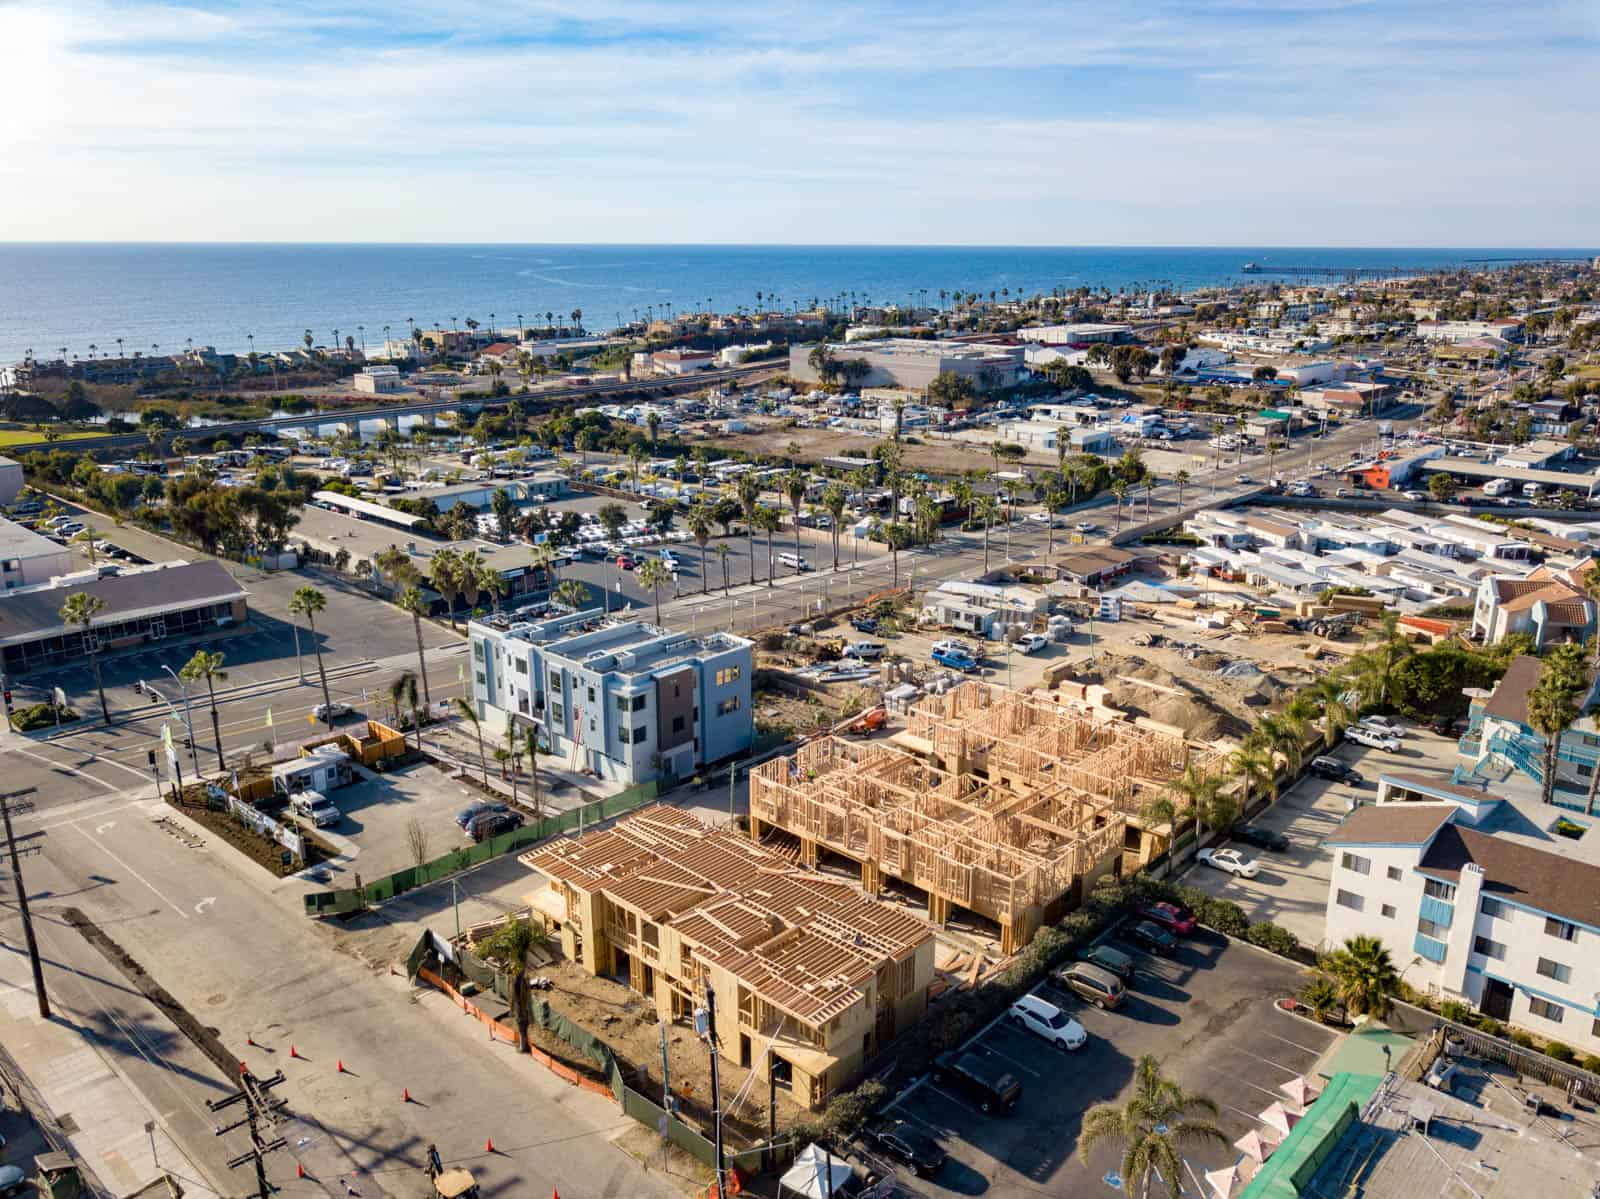 aerial photo of apartment complex under construction